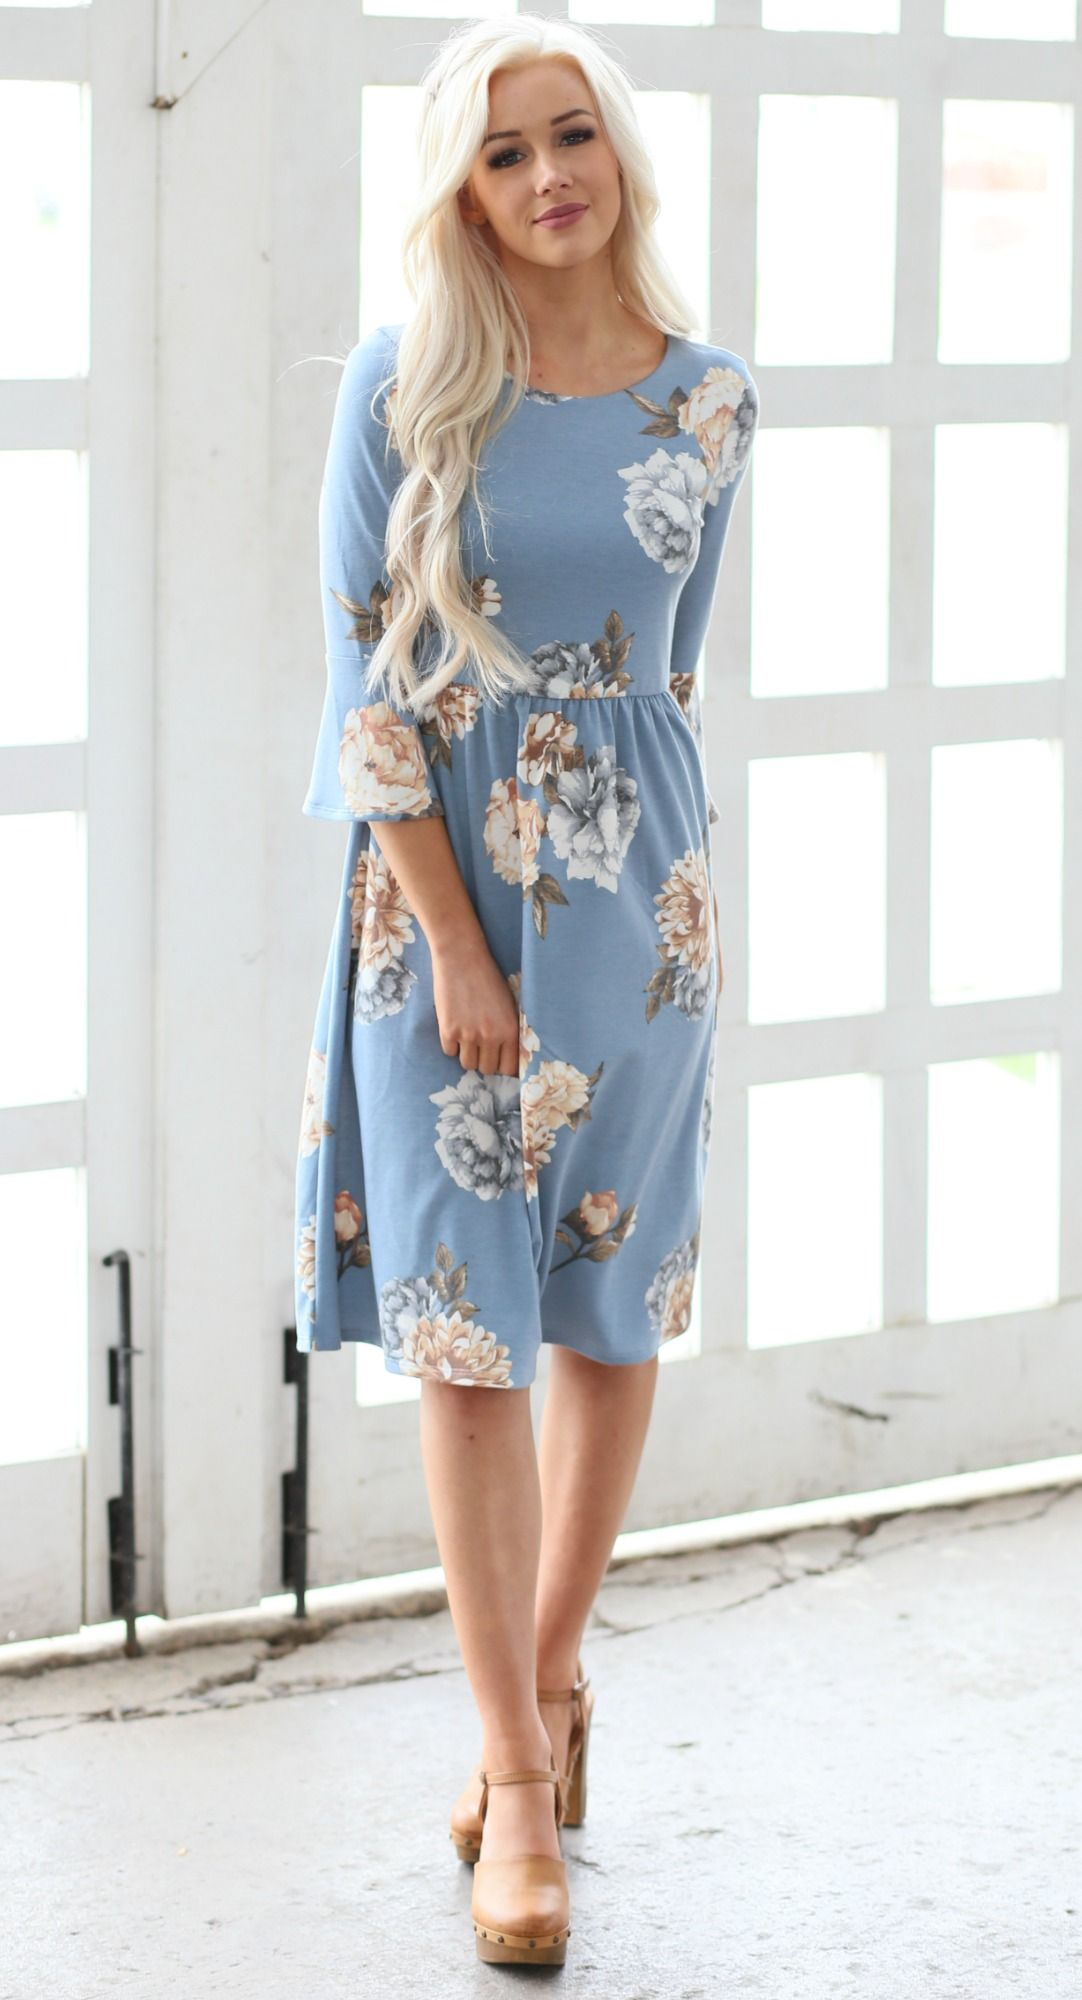 a83fd916fa0e Dusty light blue and white floral Naomi dress. Cute ruffle sleeve. Modest  length women's dress in missy sizes XS-XXL.